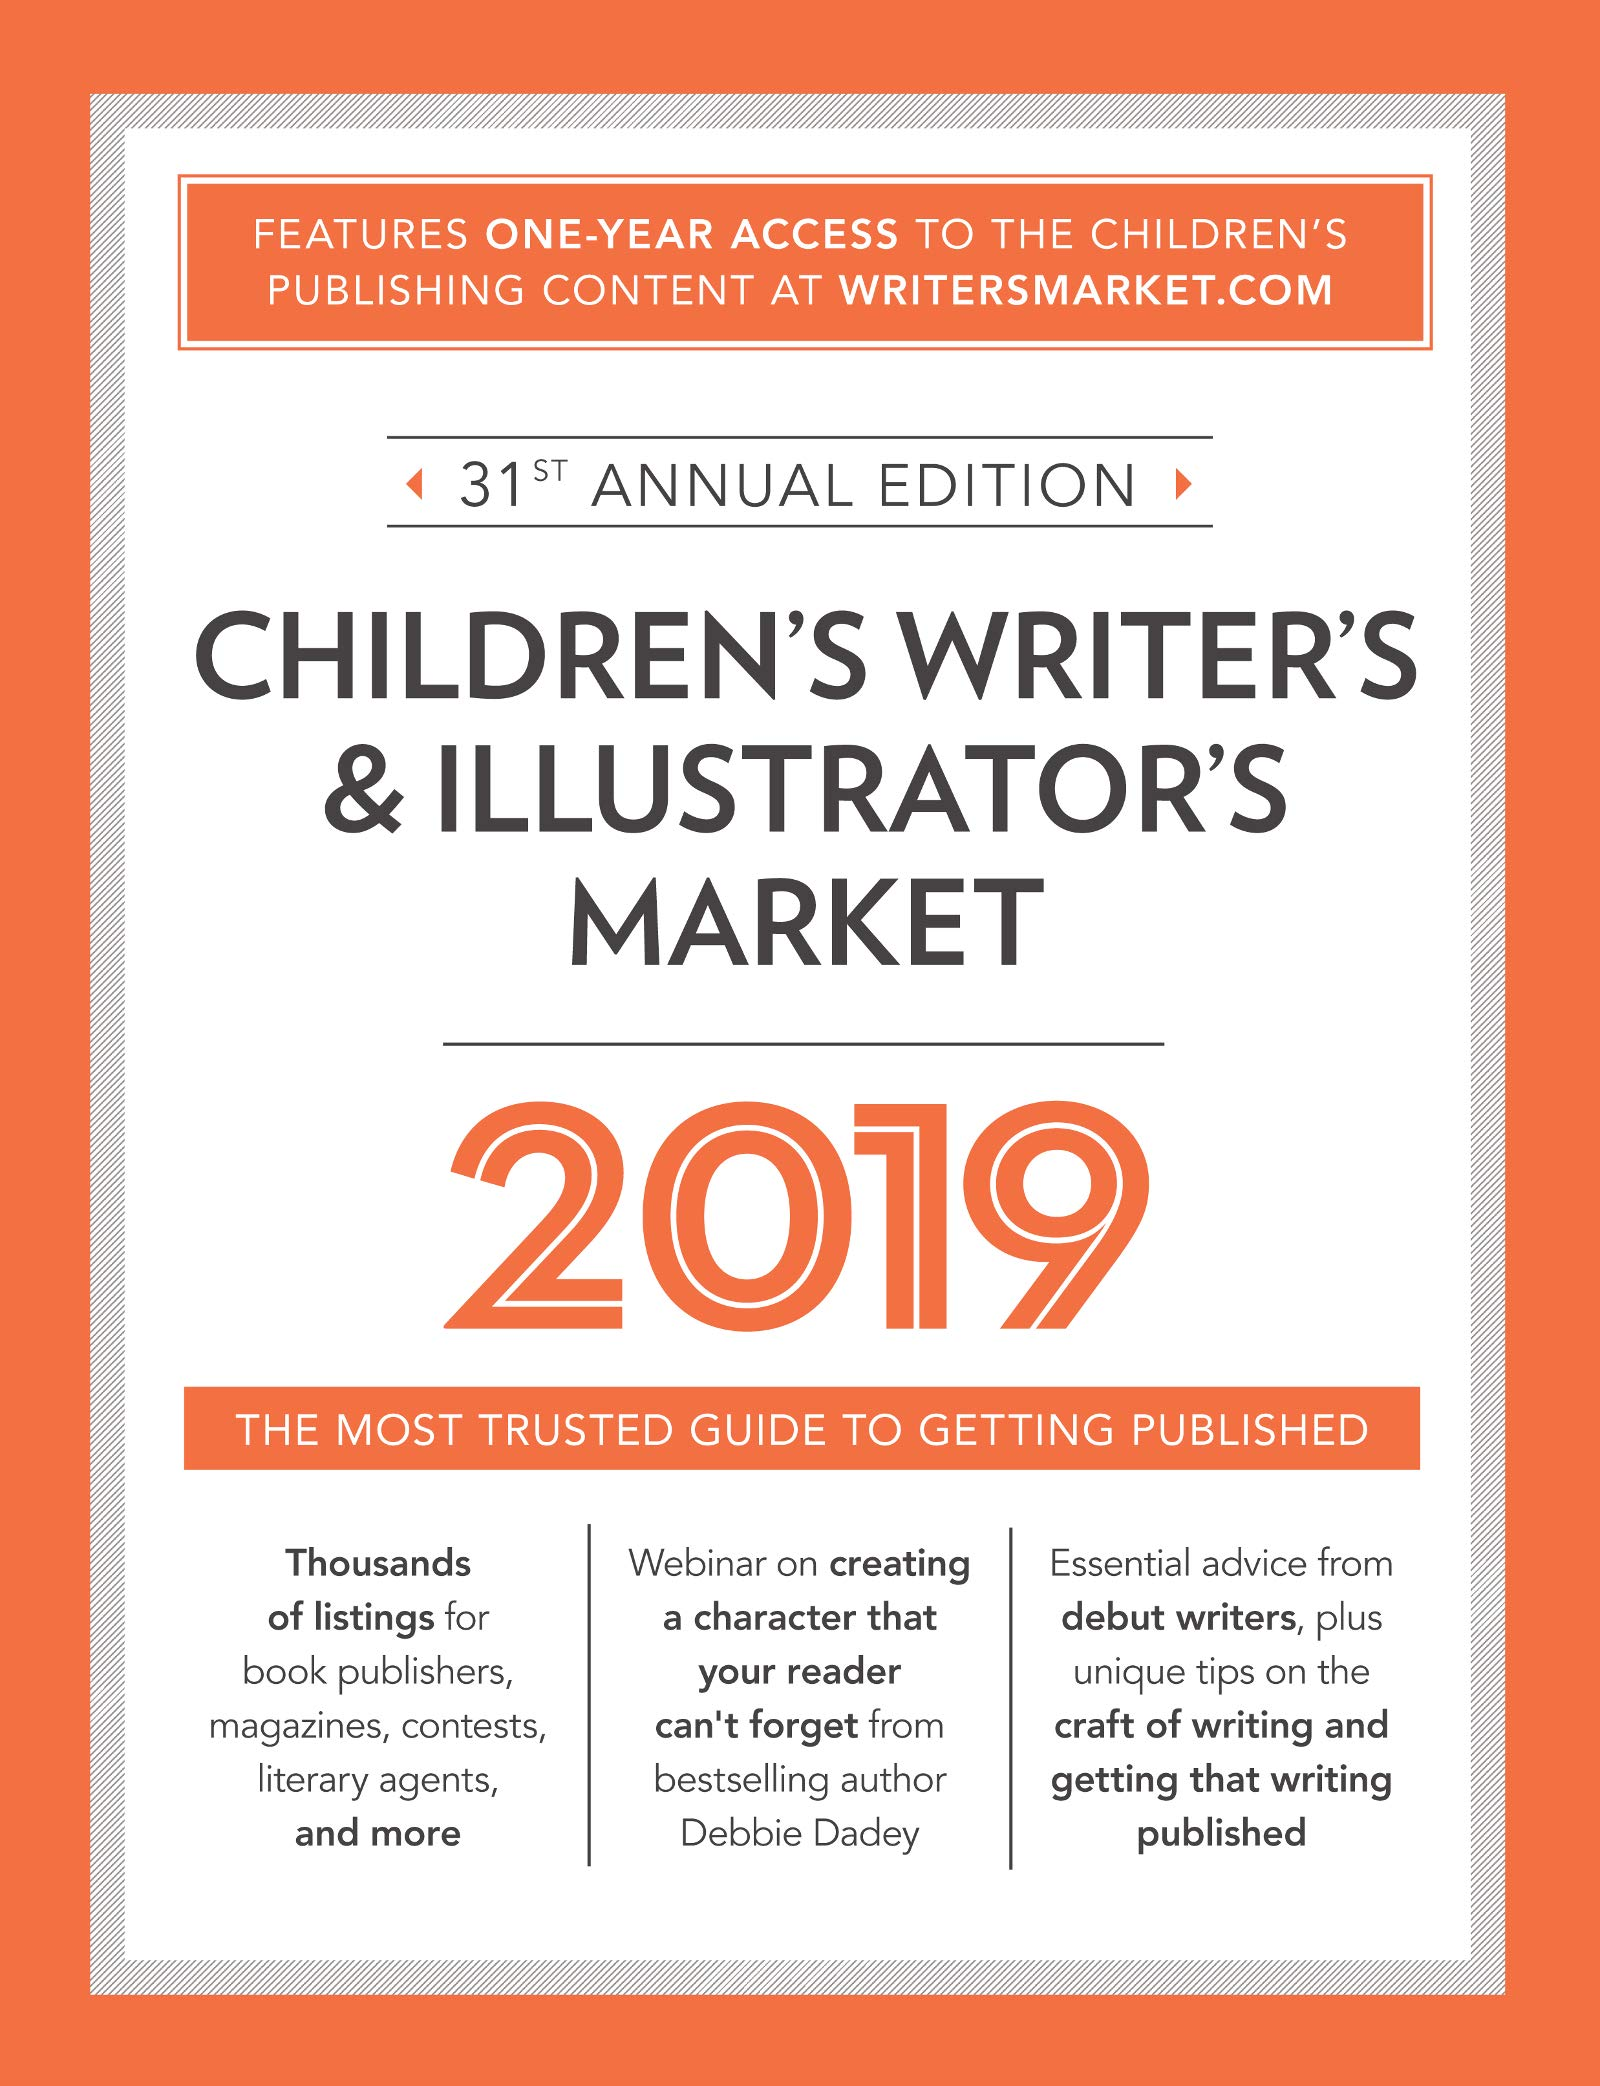 Children's Writer's And Illustrator's Market 2019  The Most Trusted Guide To Getting Published